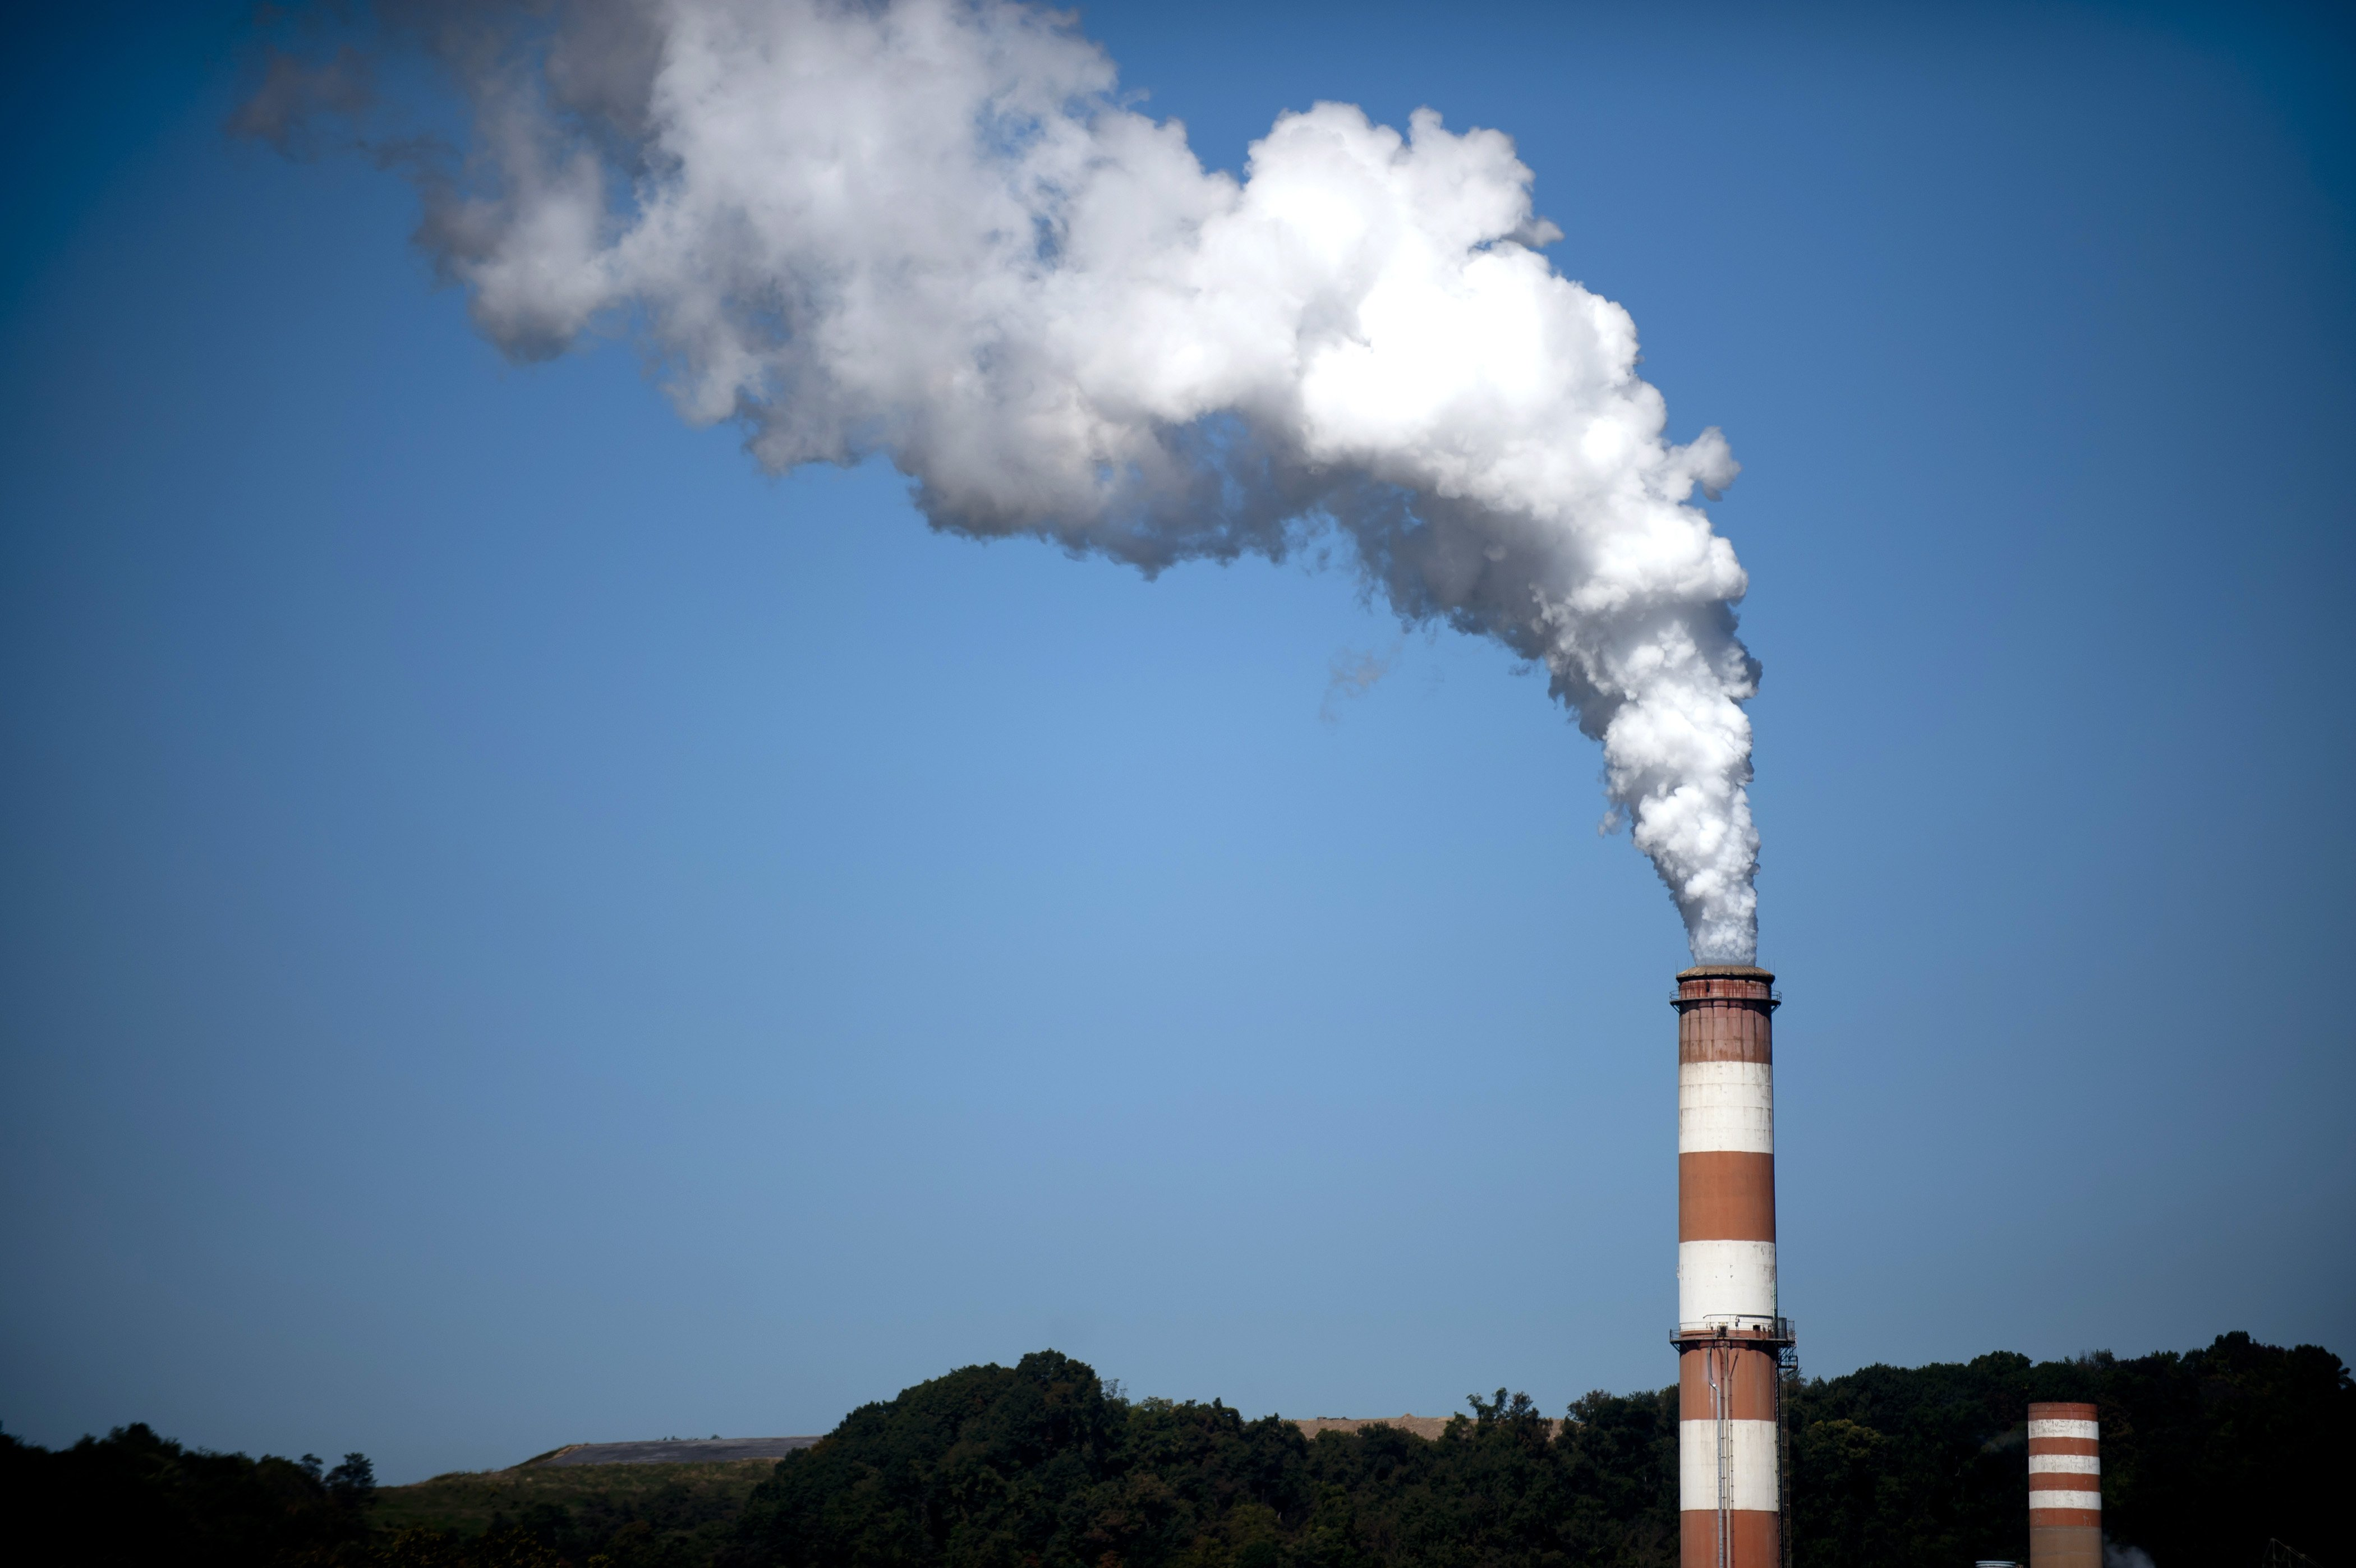 A plume of exhaust extends from the a coal-fired power plant.